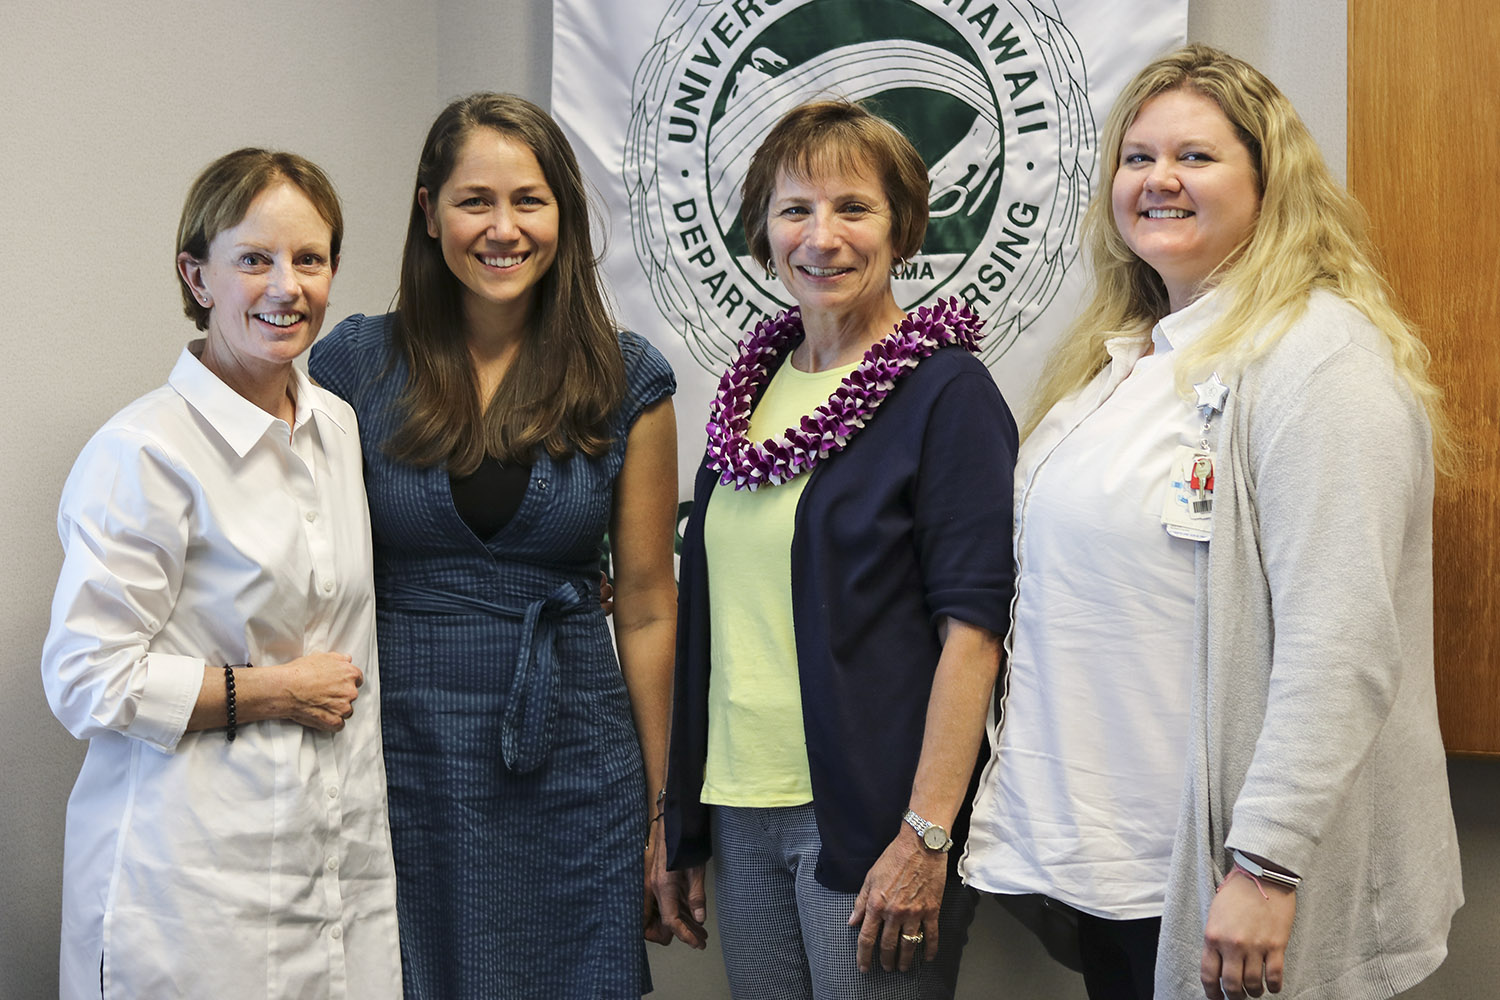 Maureen Shannon, PhD, FNP, CNM, FAAN, FACNM, UHM Nursing Graduate Chair; Natalie Anderson, RN, APRN, Future of Nursing Scholar; Susan Hassmiller, PhD, RN, FAAN, co-director of the Future of Nursing Scholars program; Emily Heenan, MS, RN, Future of Nursing Scholar